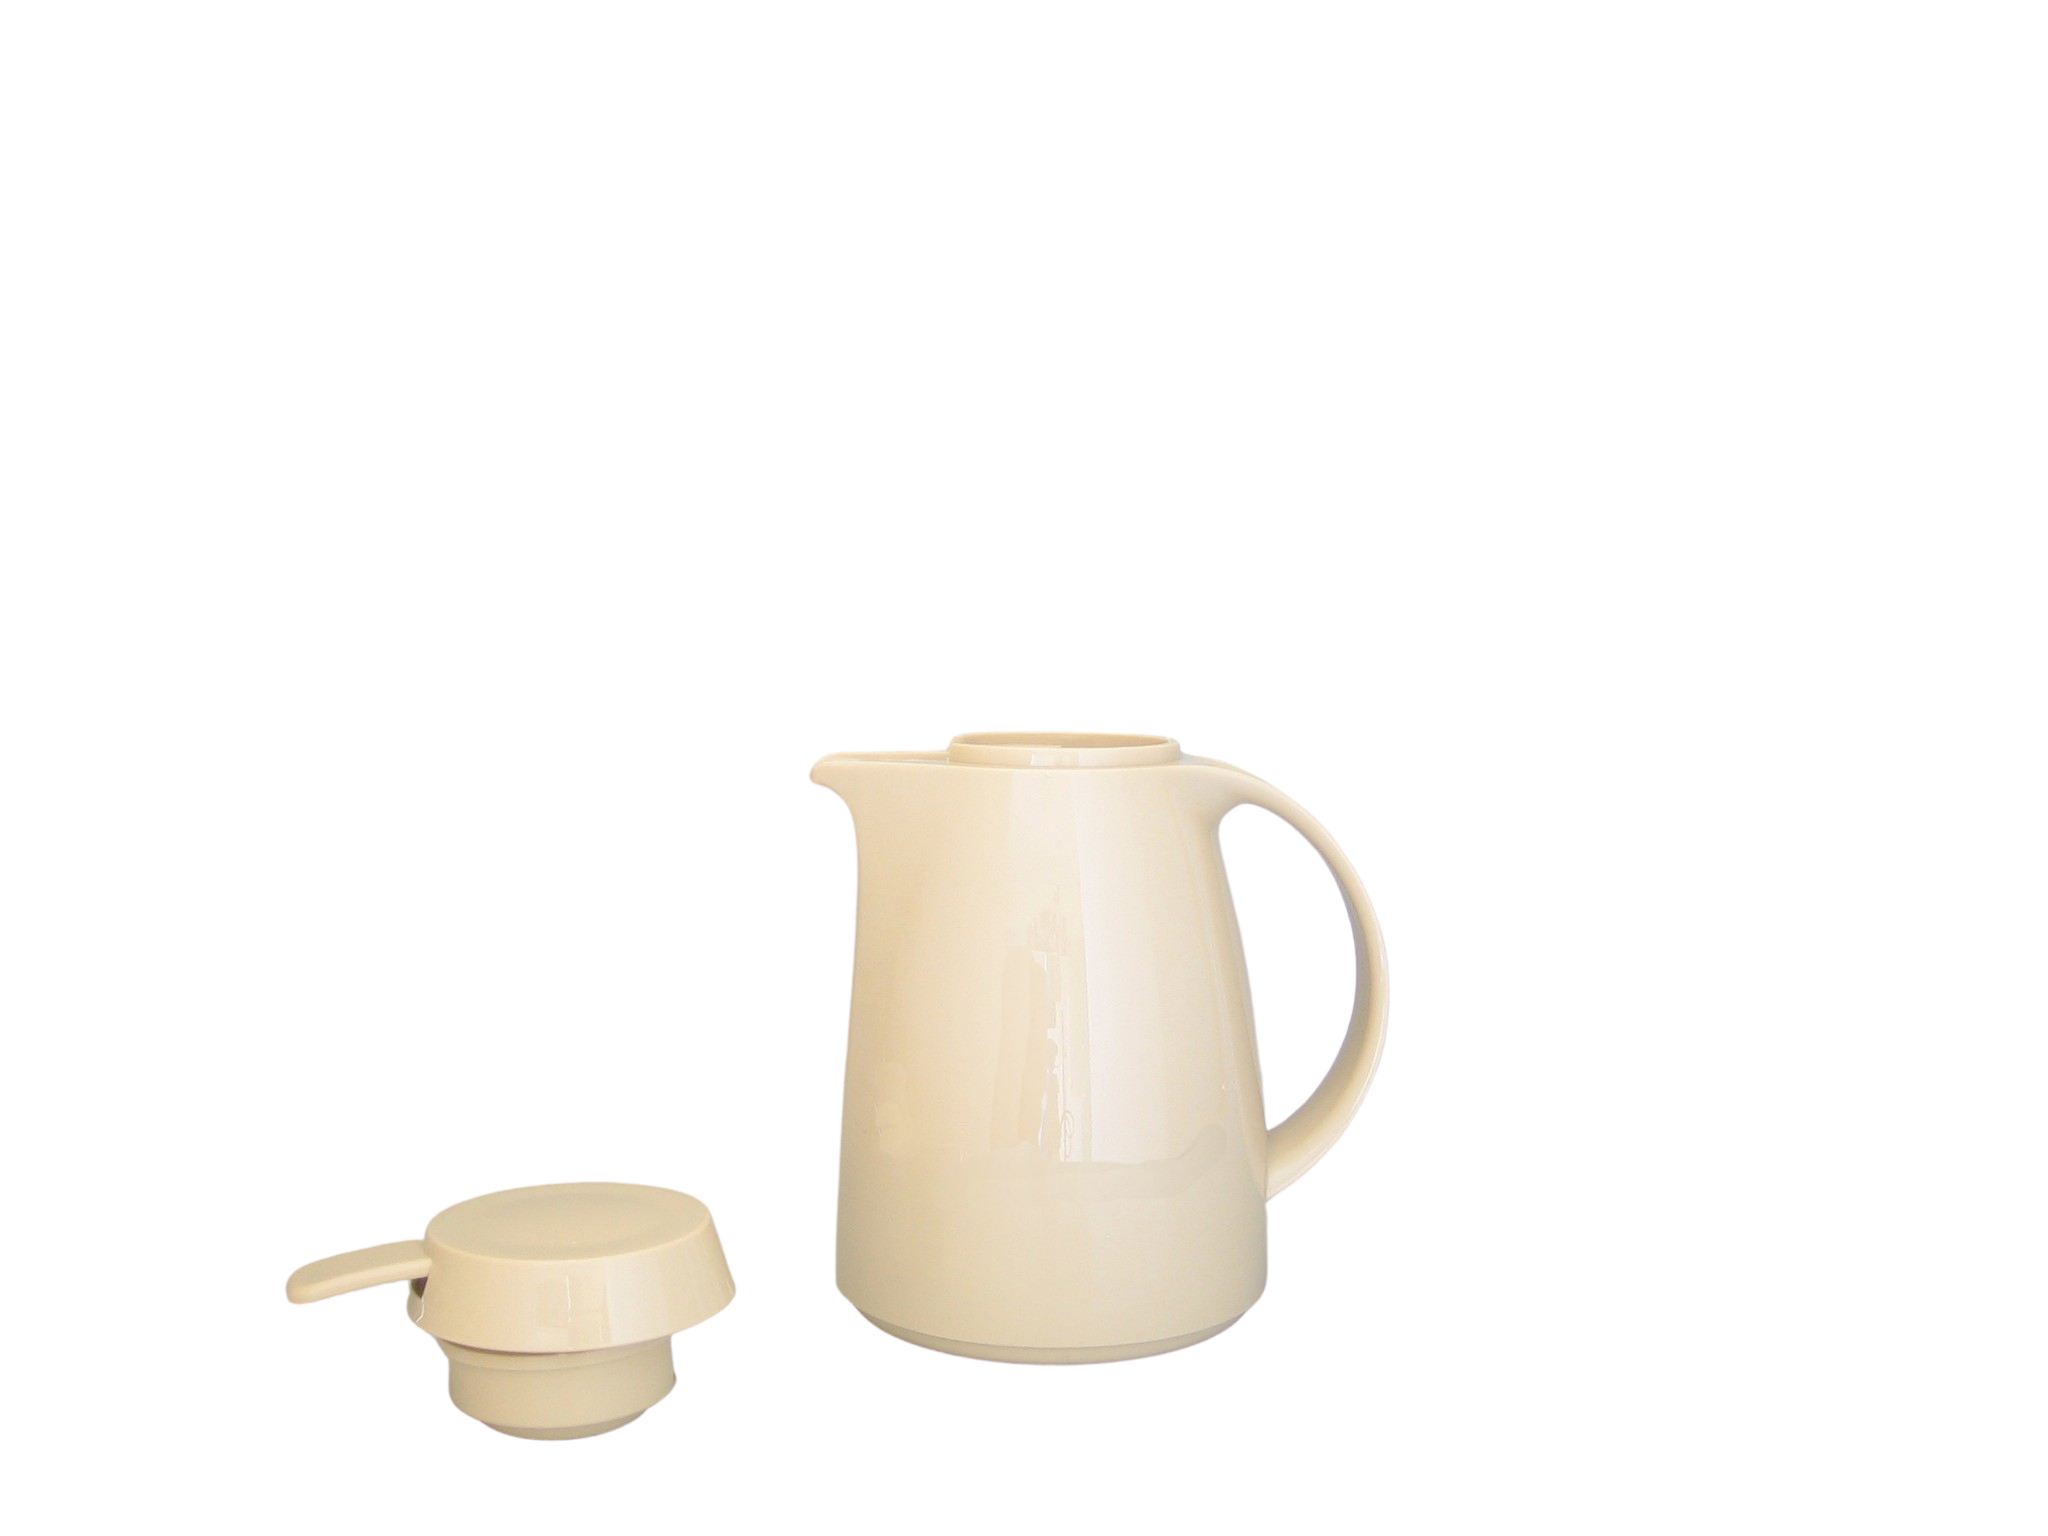 7201-042 - Pichet isotherme beige 0.3 L SERVITHERM (ex-7203-042) - Helios